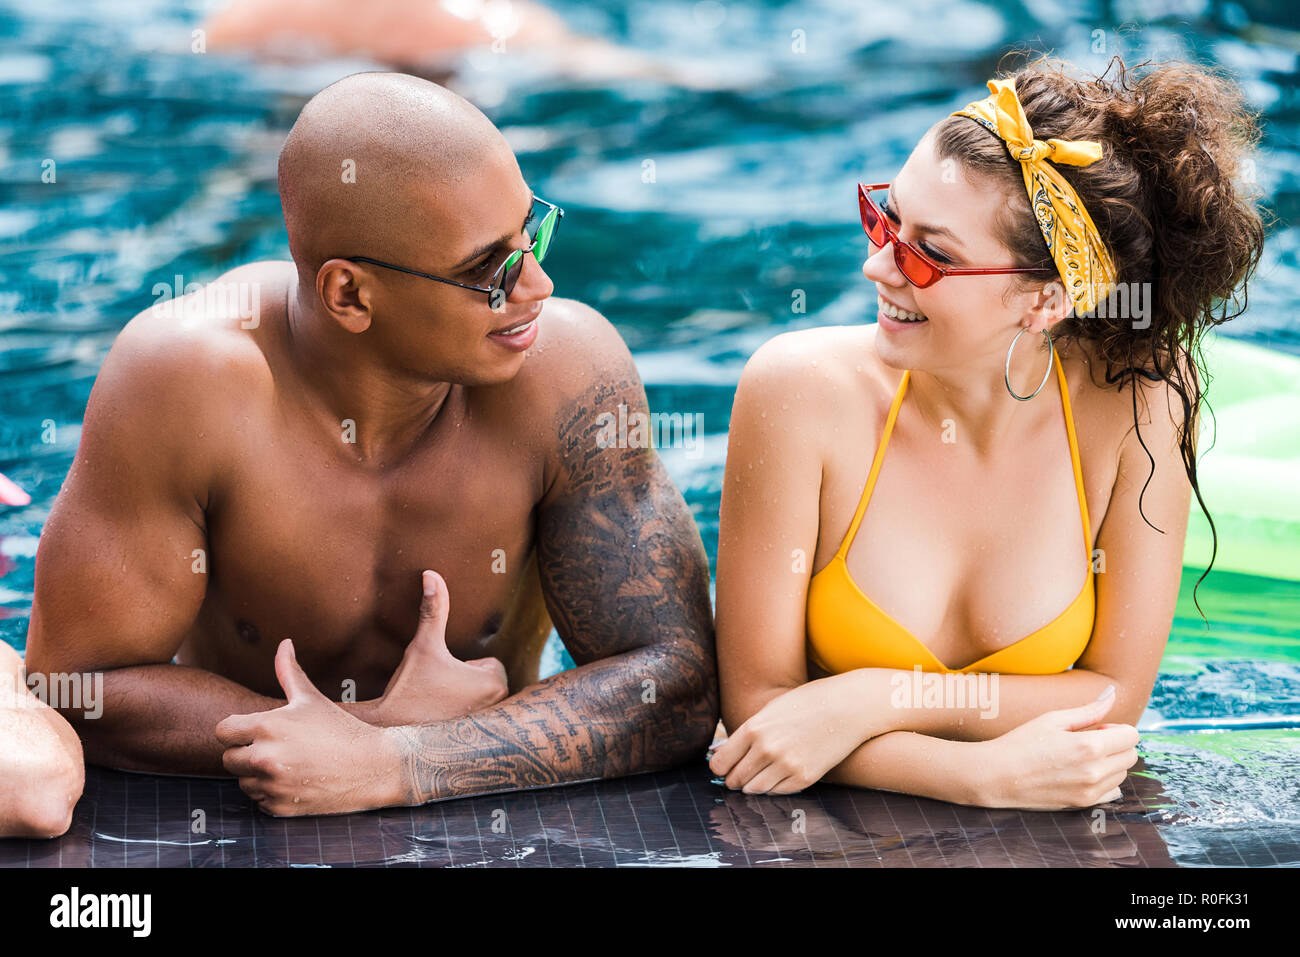 young in sunglasses looking at each other in swimming pool - Stock Image